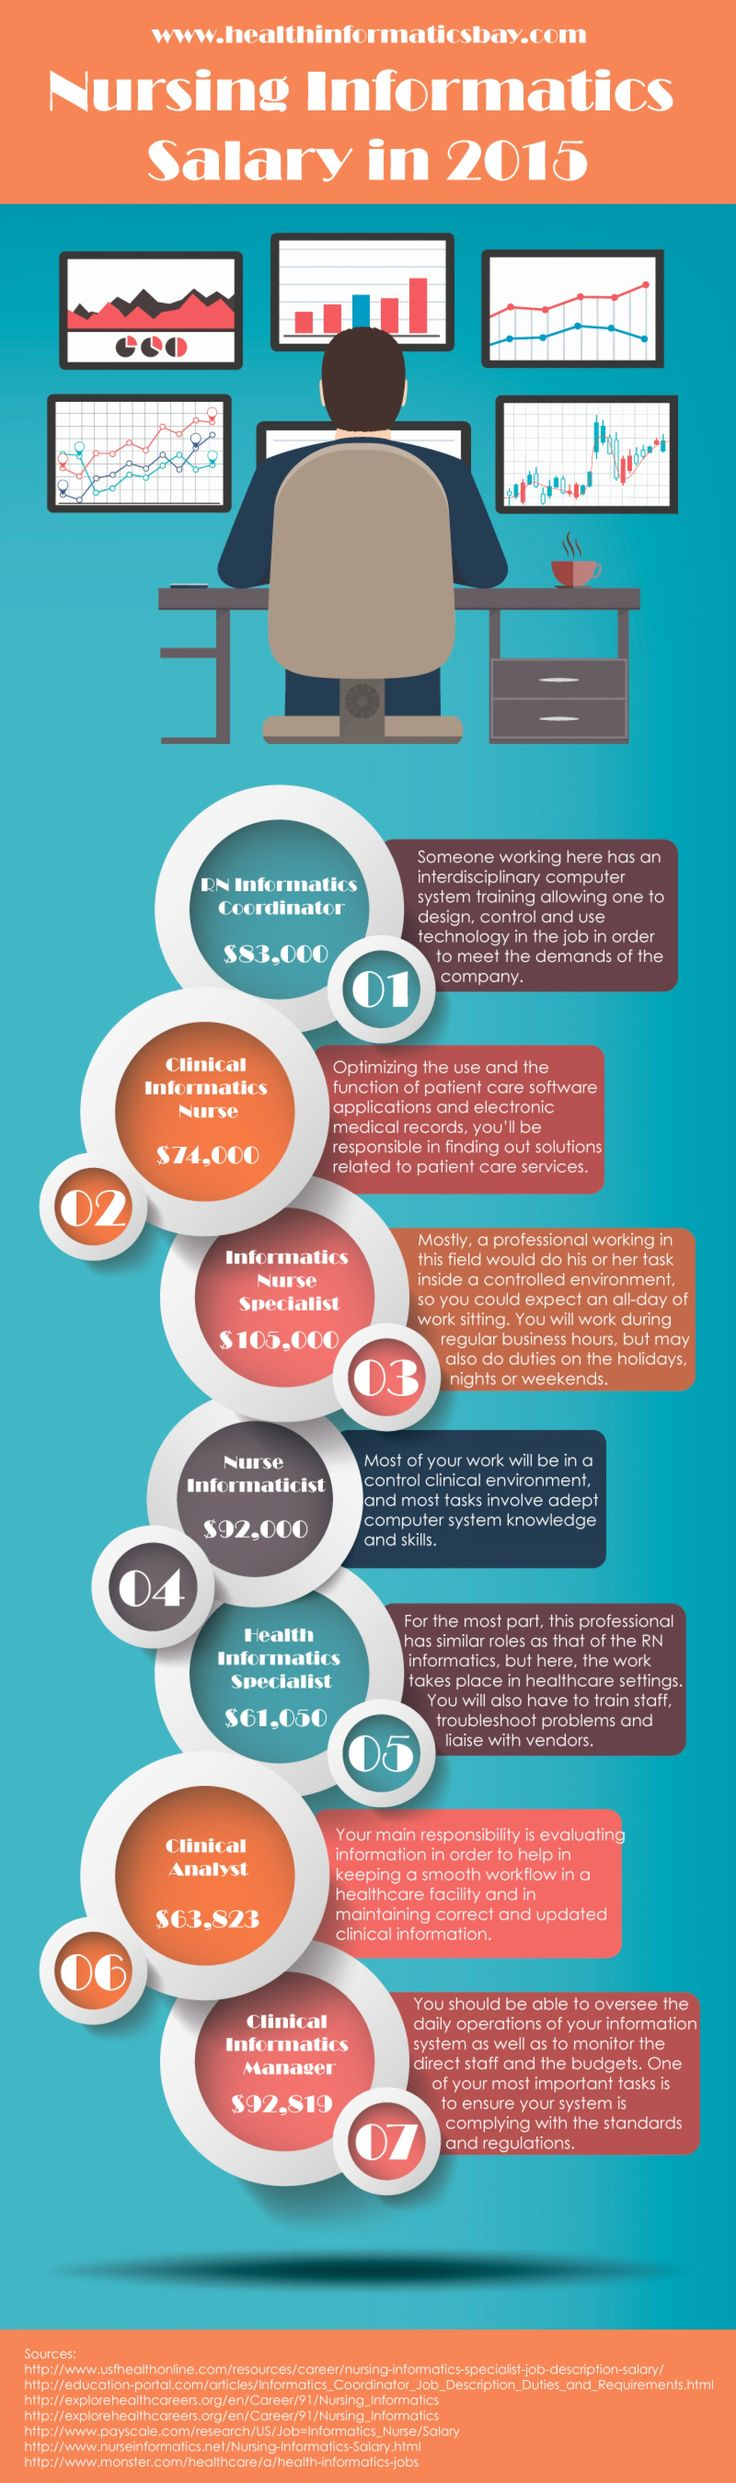 Nursing Informatics Salary in 2015 Infographic